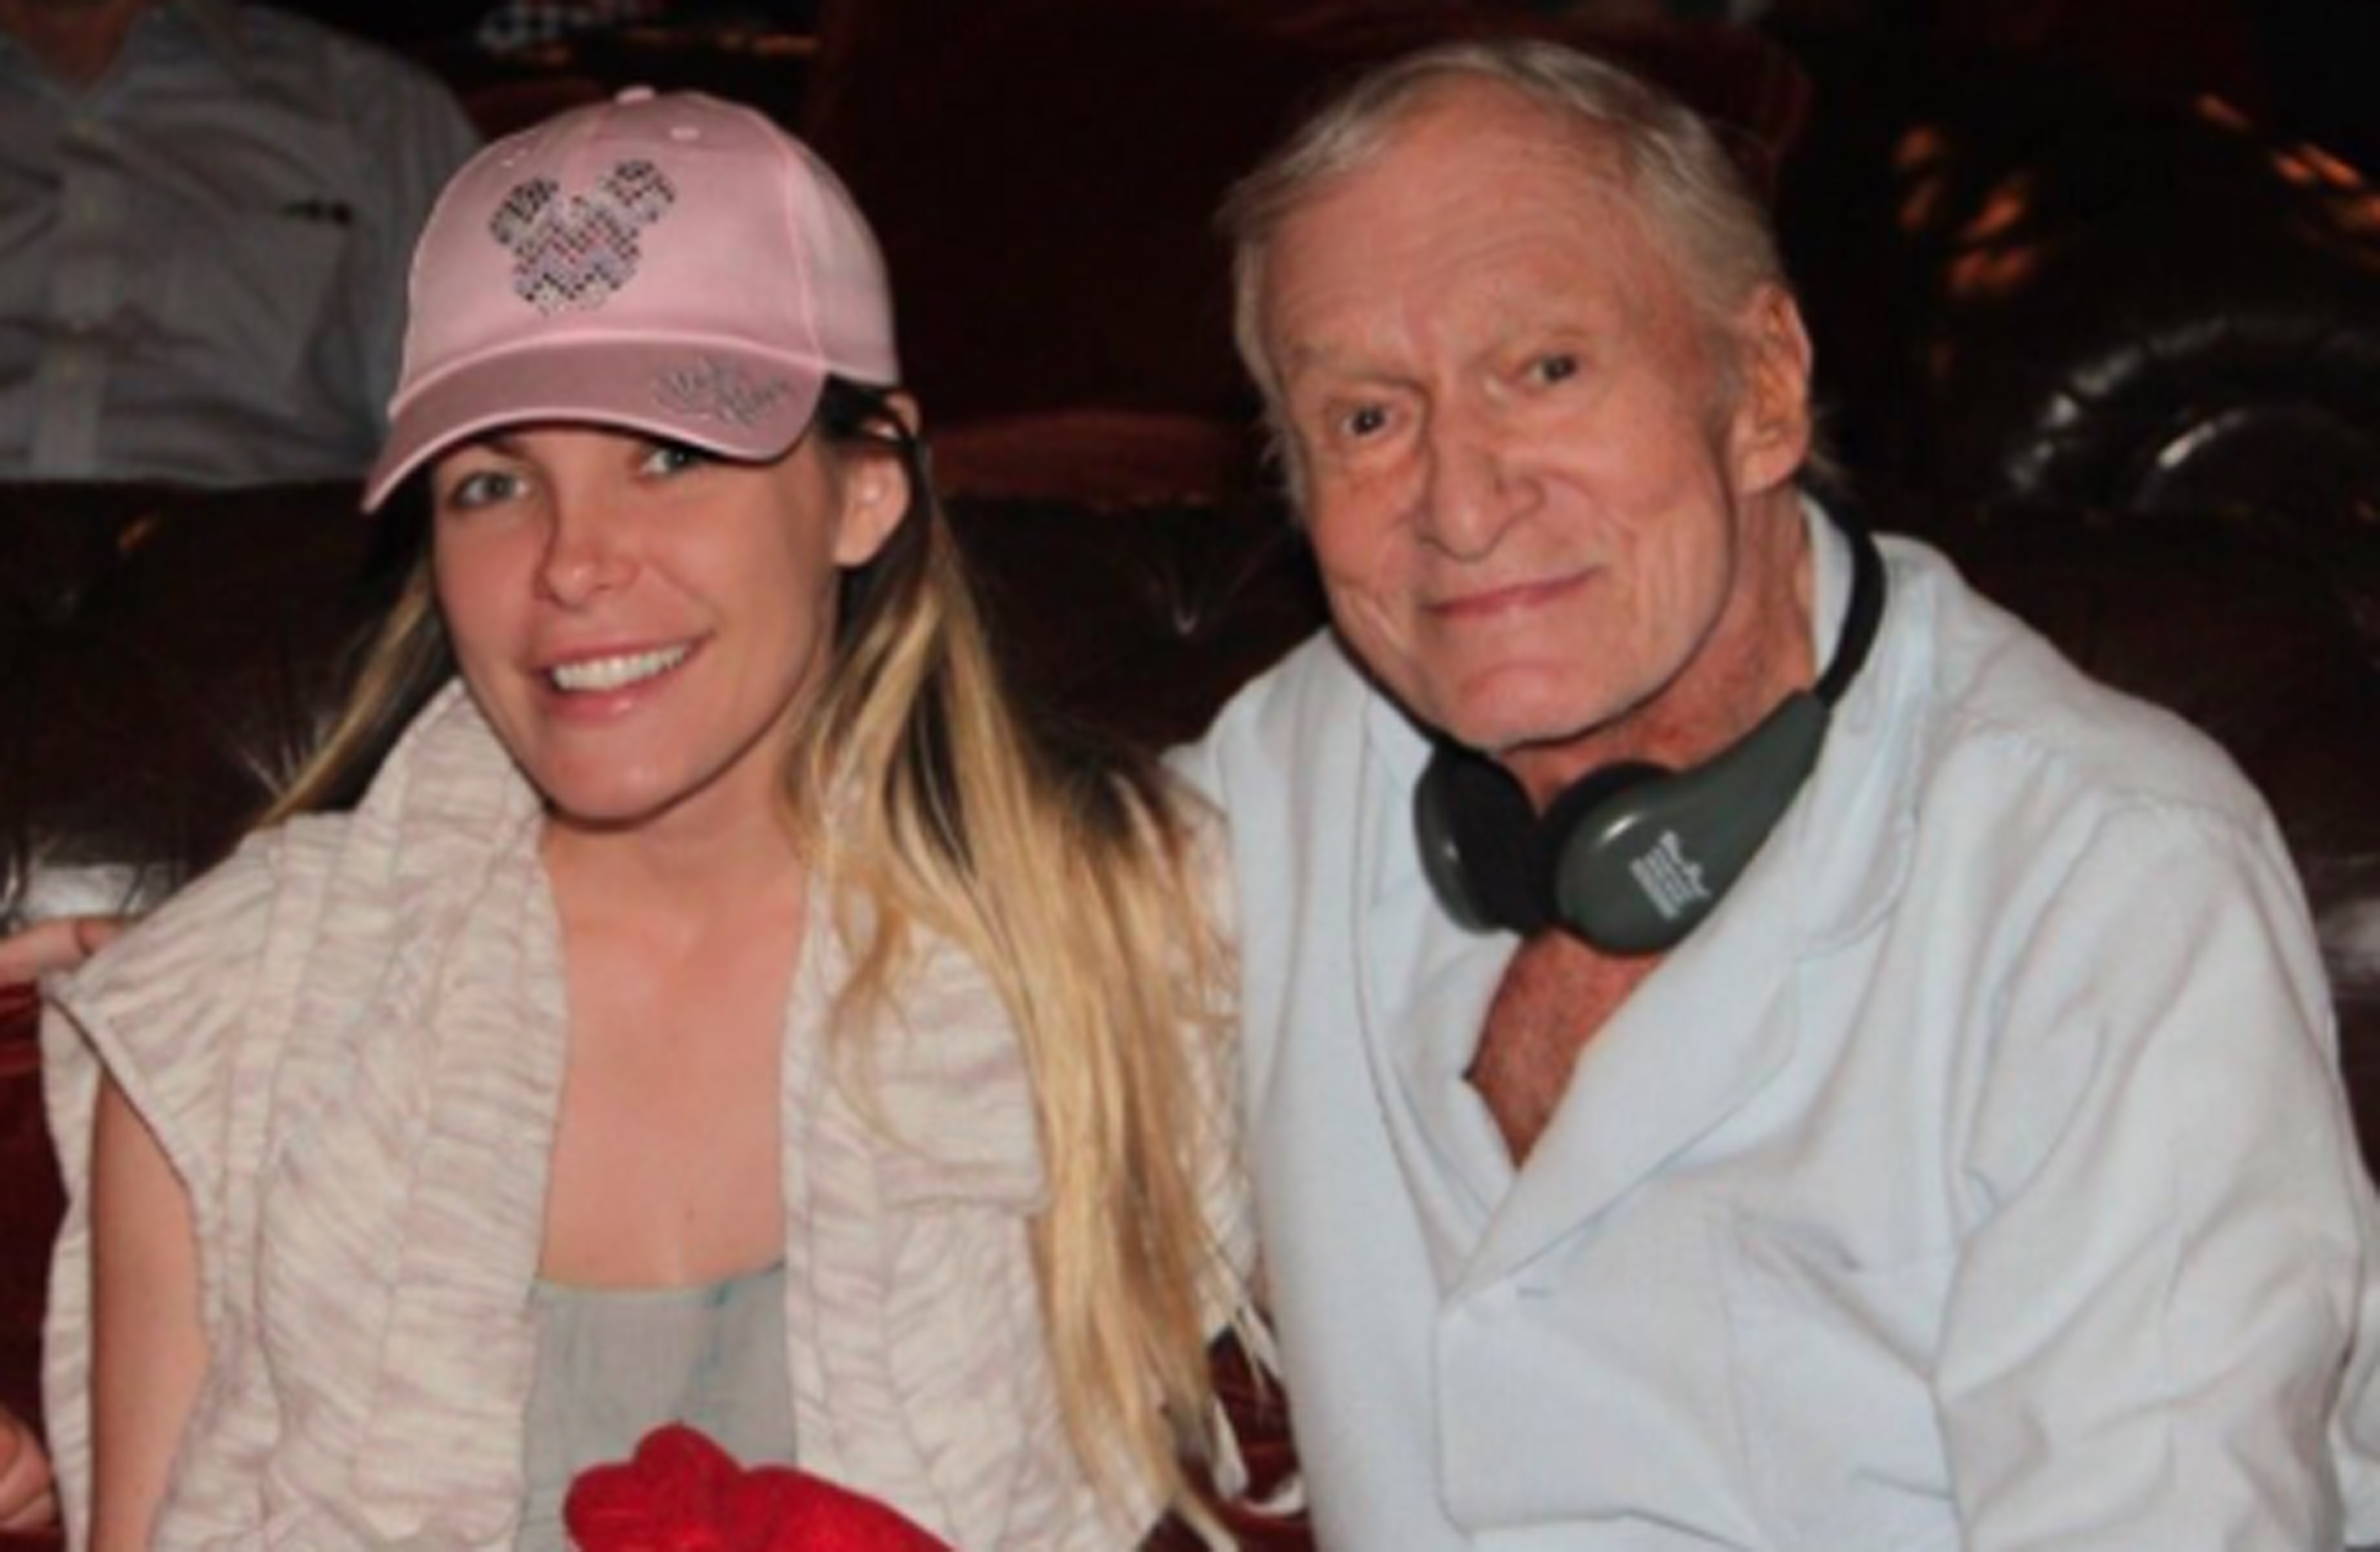 Not dying yet! Hugh Hefner slams reports he is 'super sick'